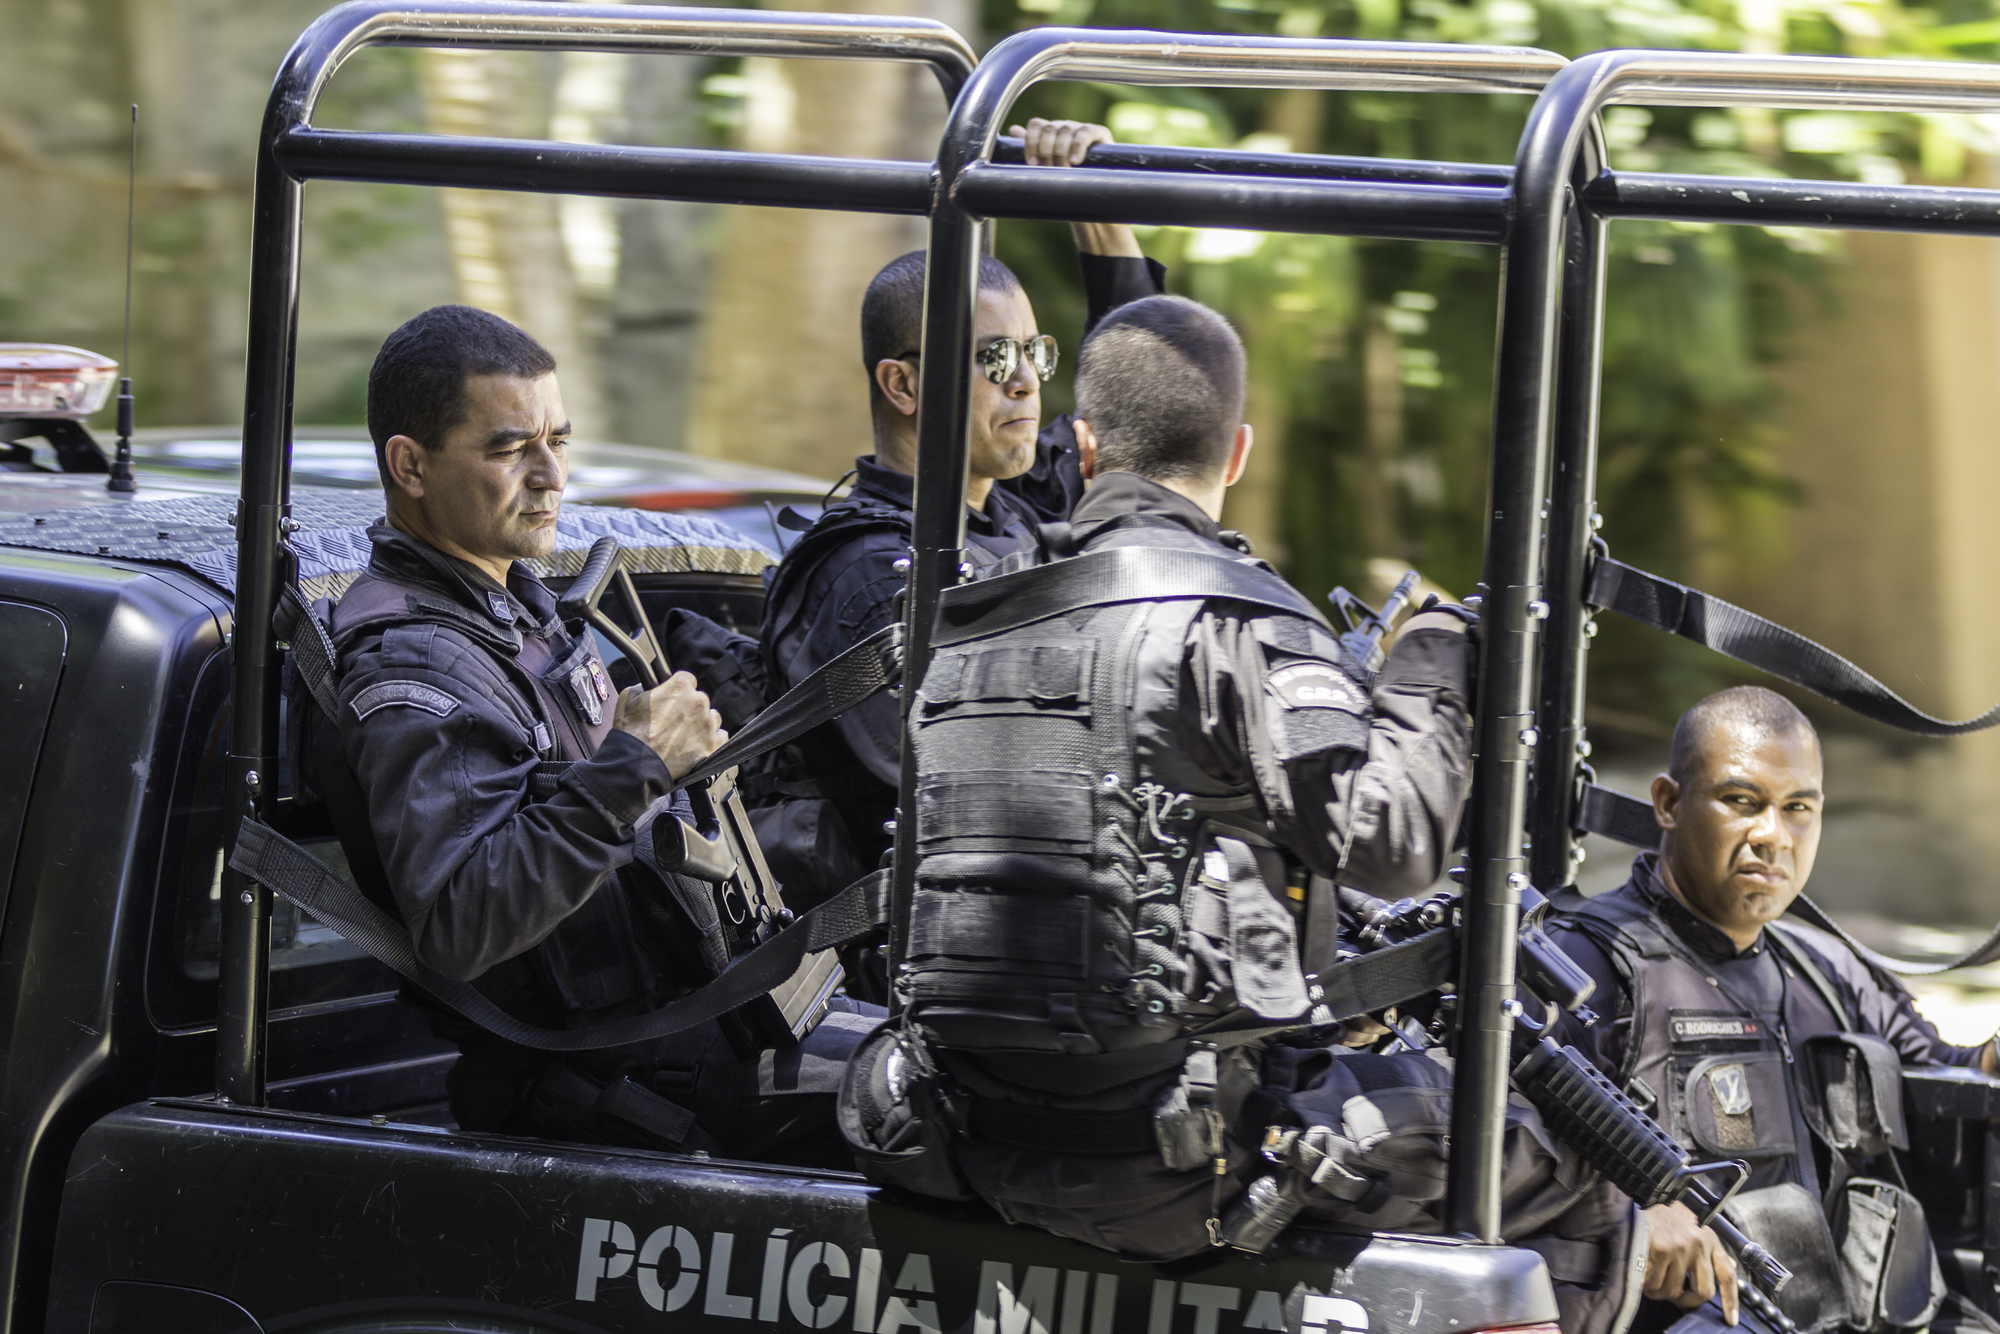 Rio de Janeiro's police killed a record number of people in three months